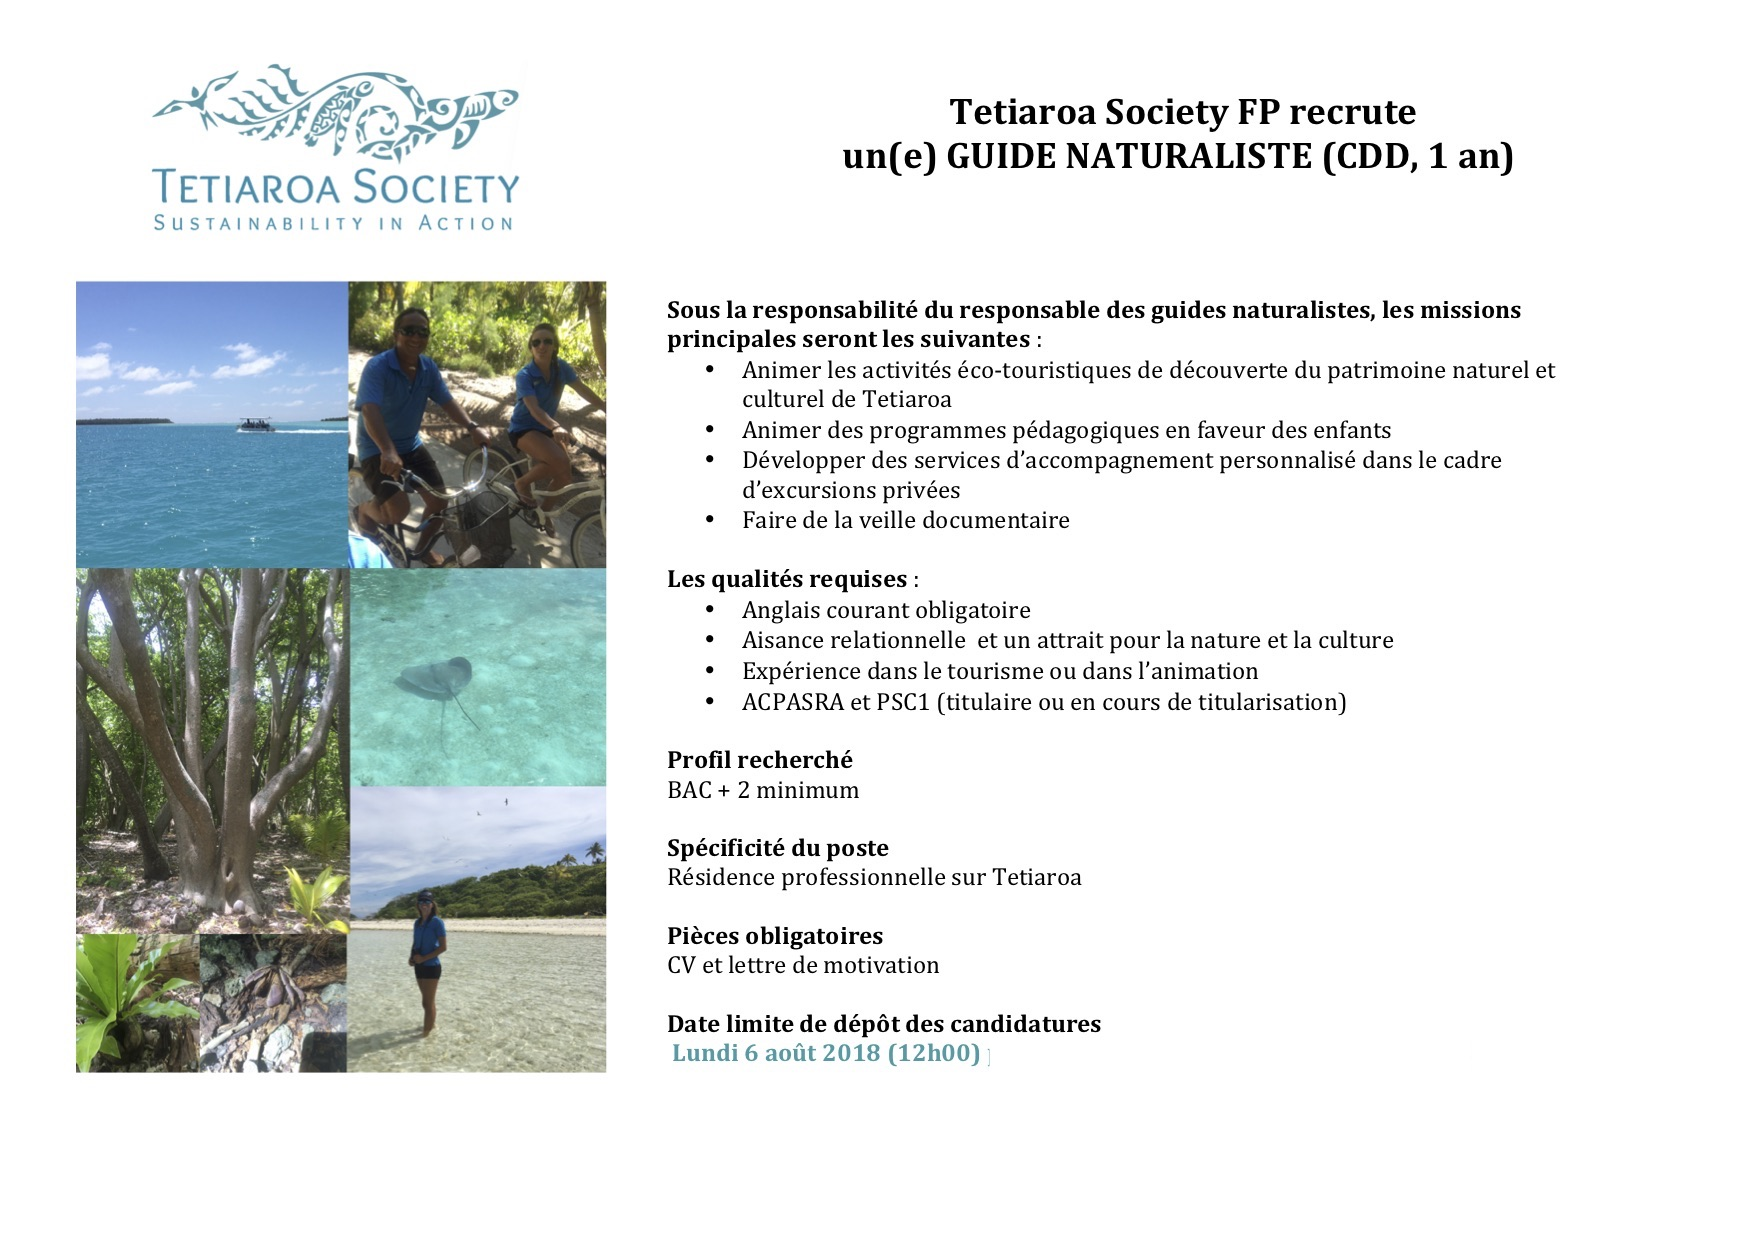 Job opportunity with Tetiaroa Society - Nature Guide